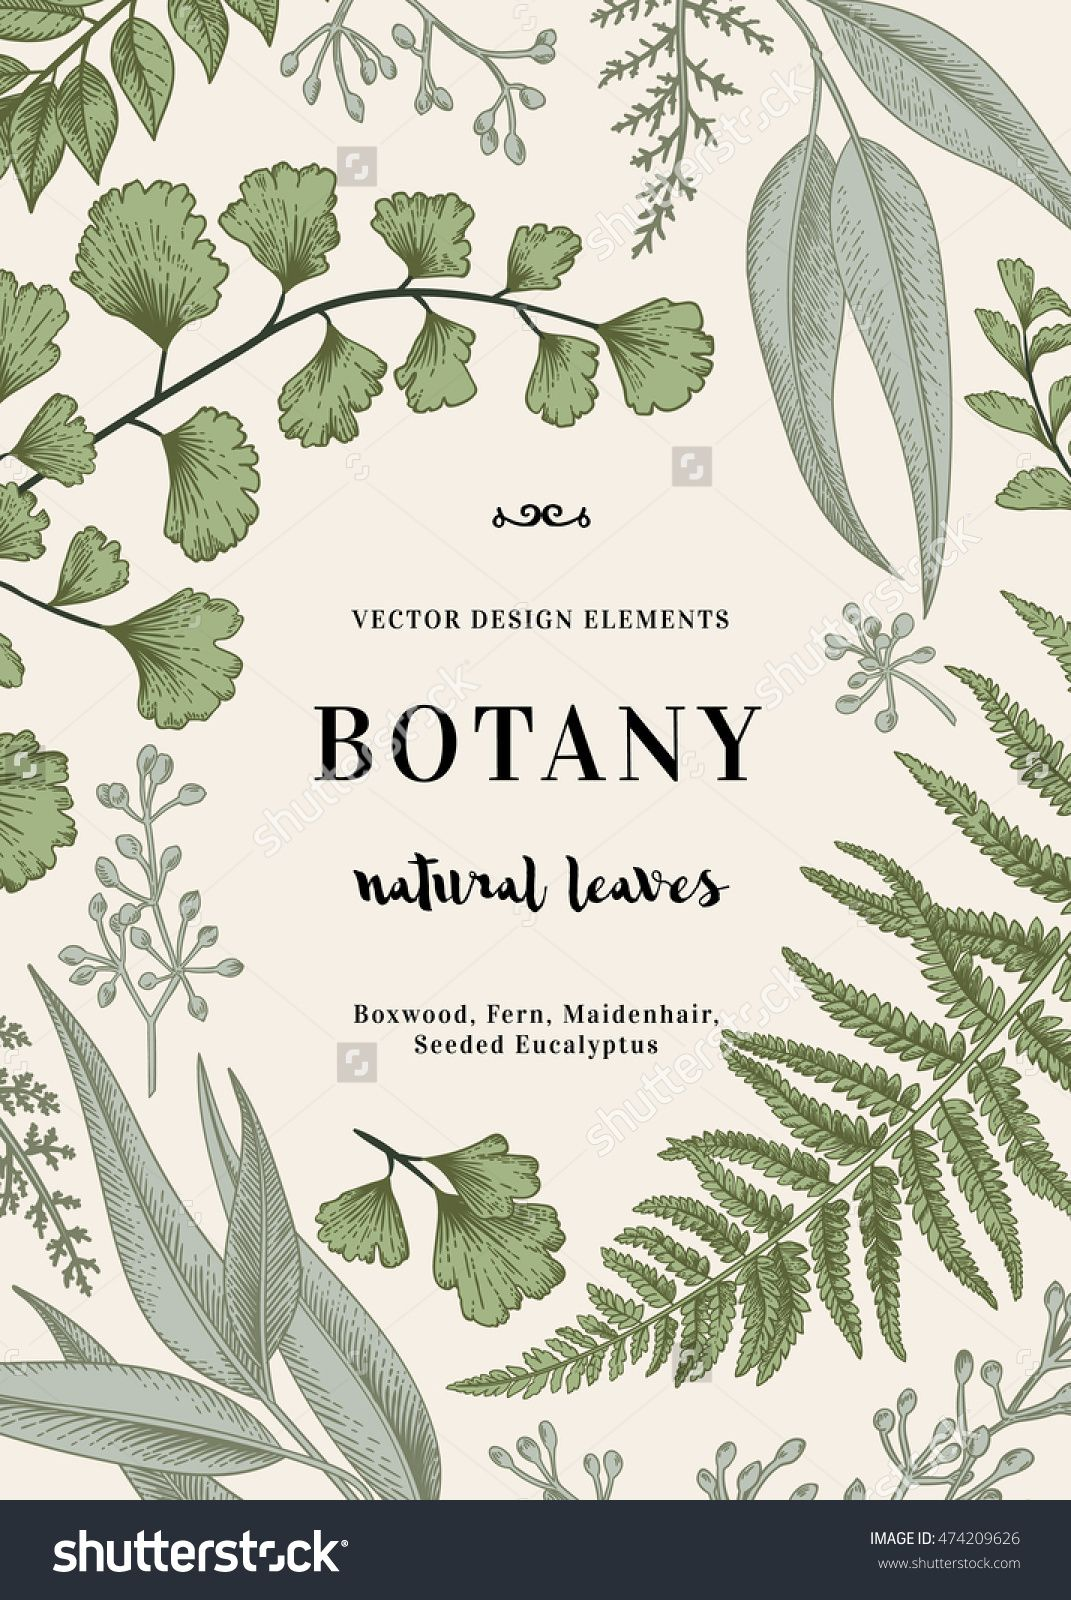 Floral vector background vintage invitation with various leaves floral vector background vintage invitation with various leaves botanical illustration fern seeded eucalyptus maidenhair engraving style stopboris Image collections